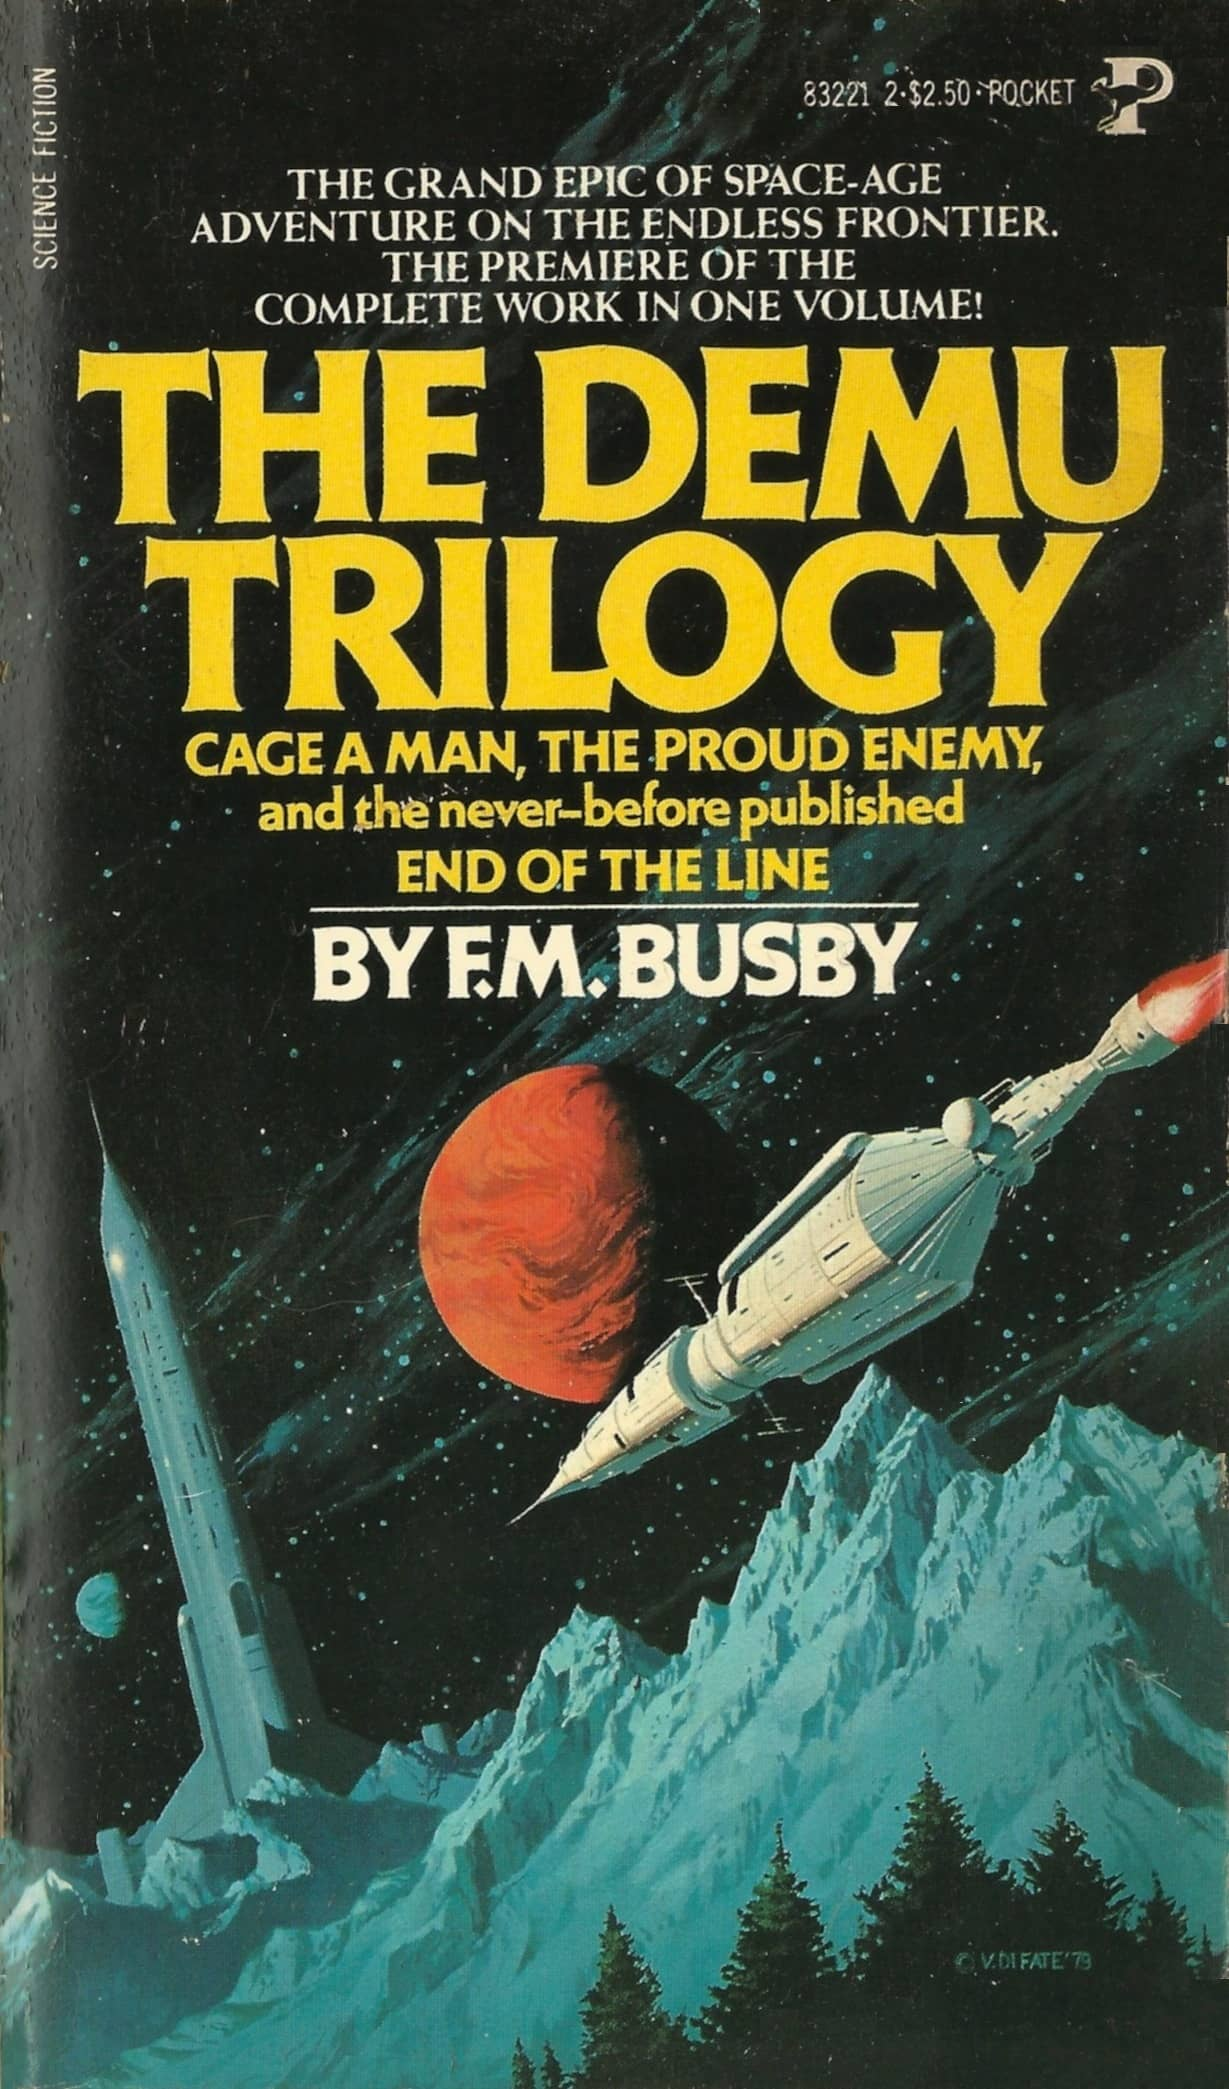 Vintage Treasures: The Demu Trilogy Omnibus by F.M. Busby